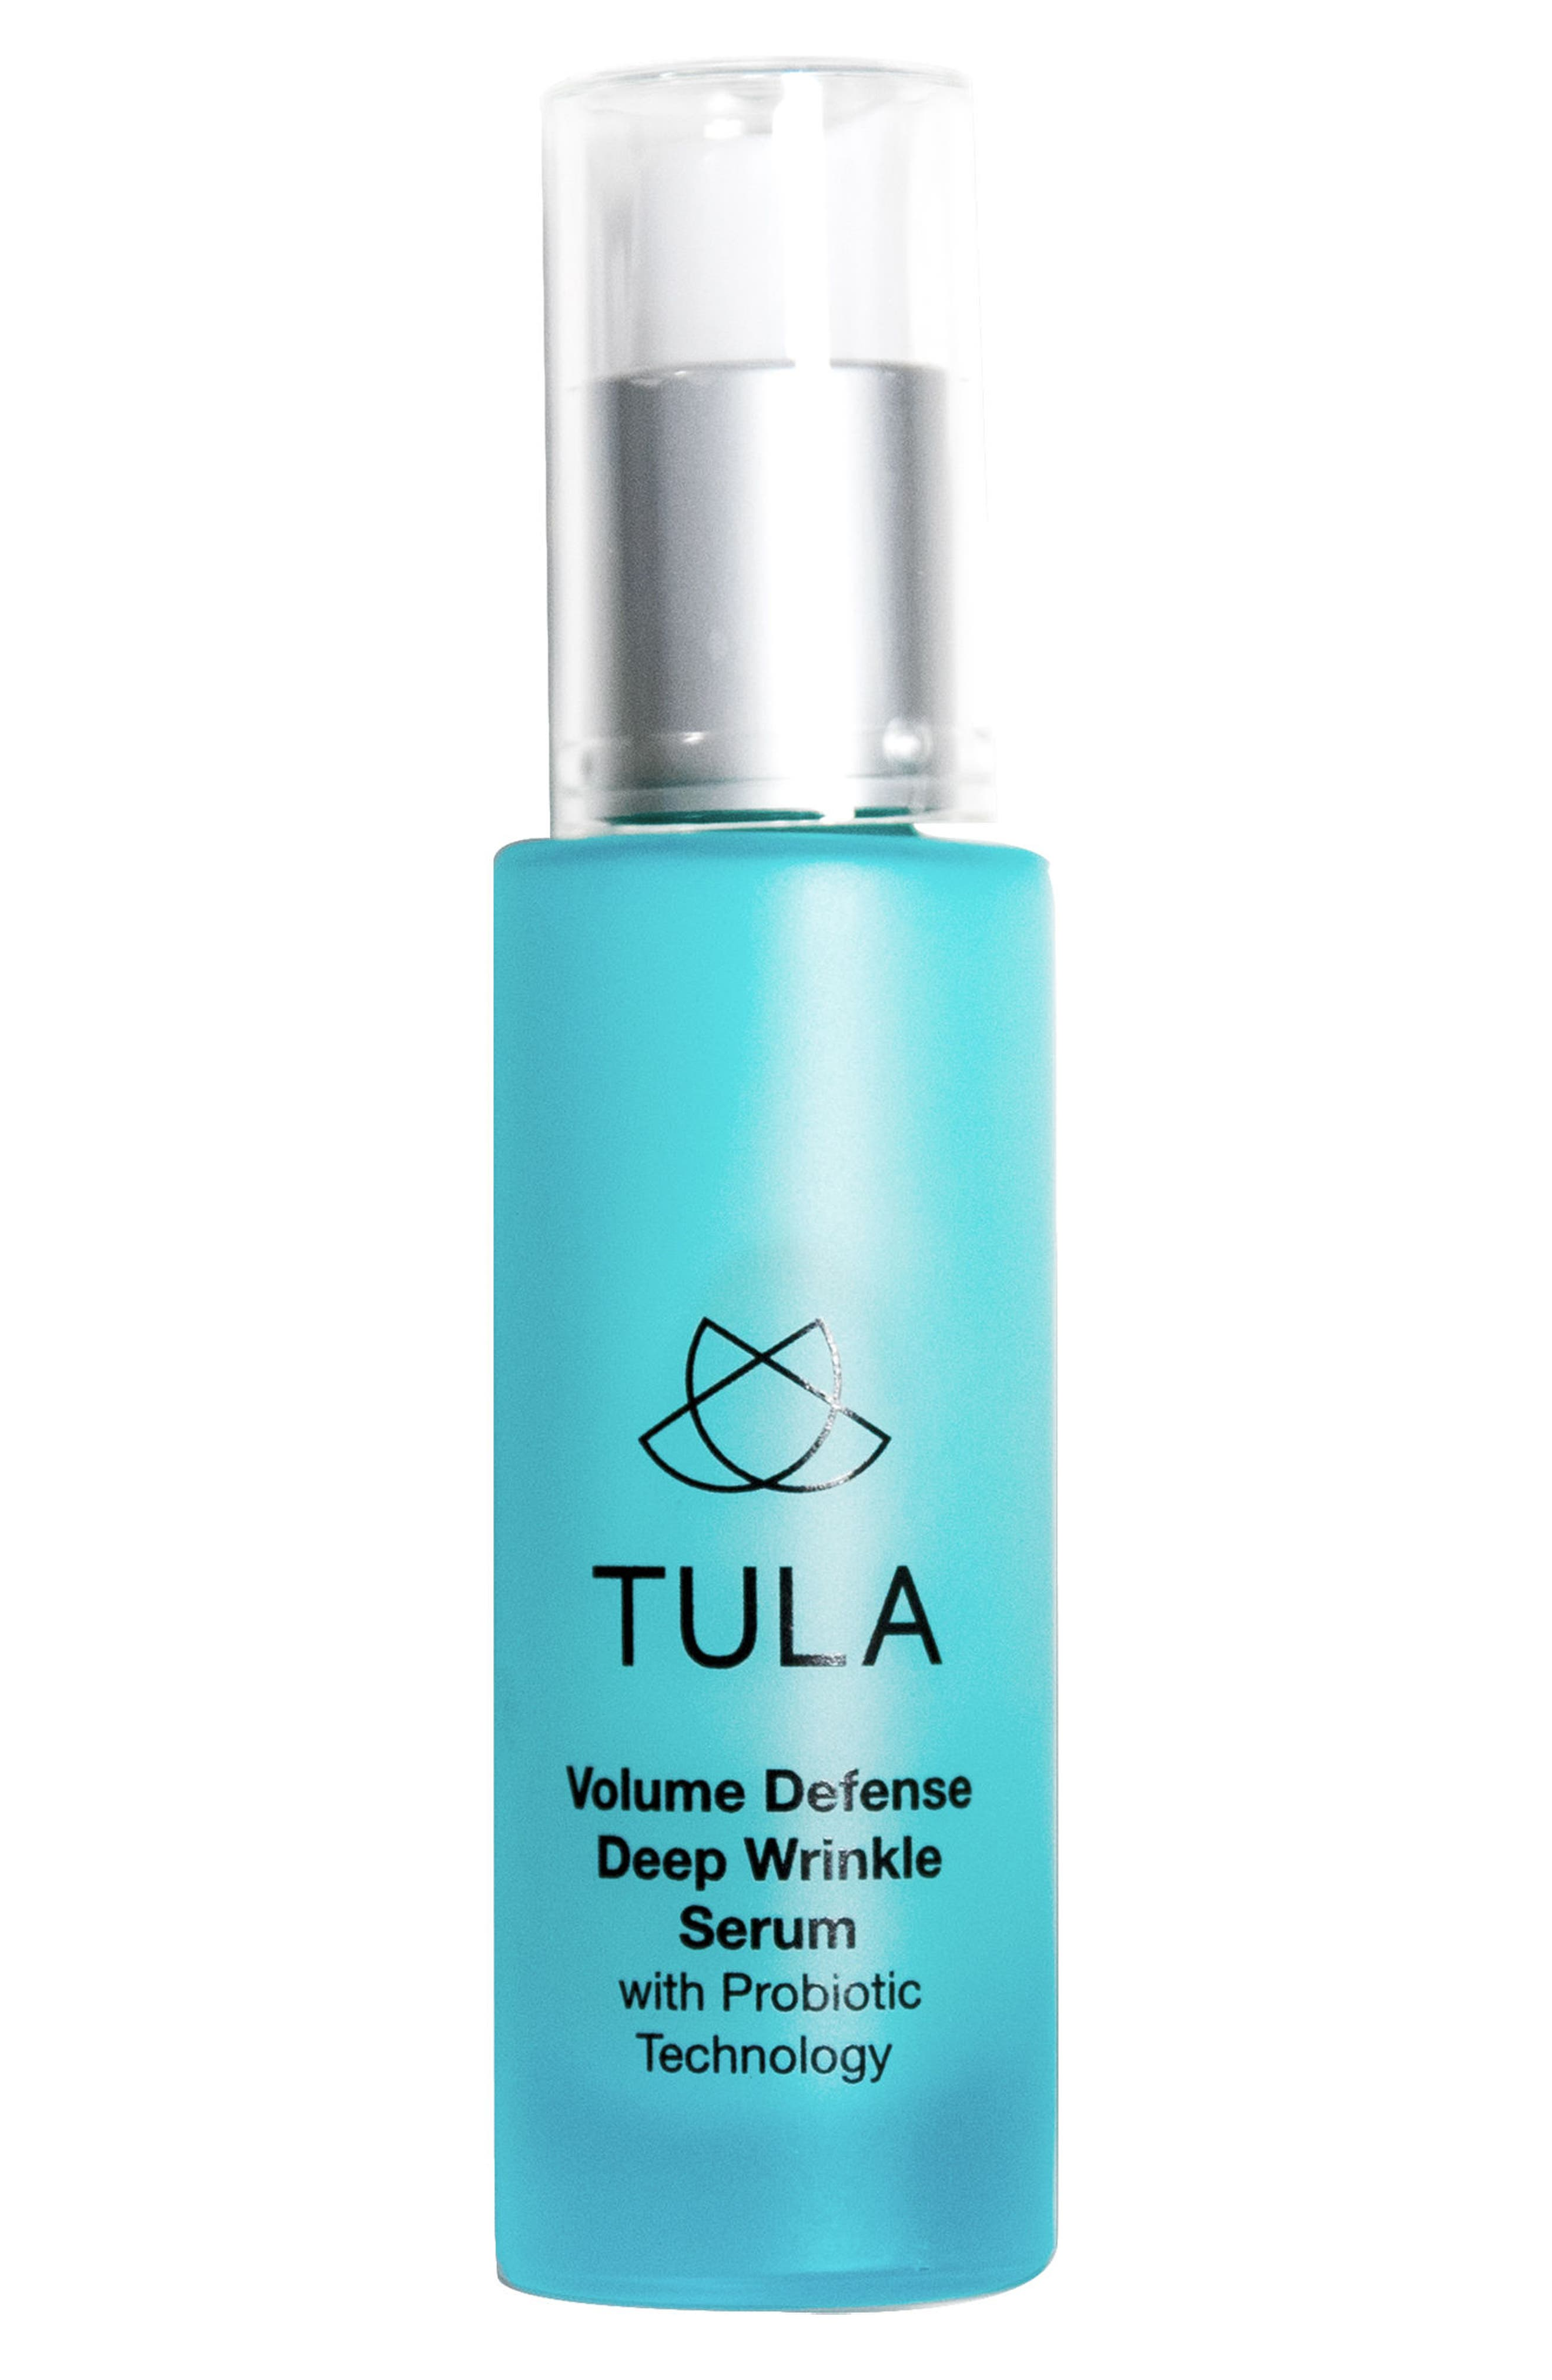 Tula Probiotic Skincare Volume Defense Deep Wrinkle Serum